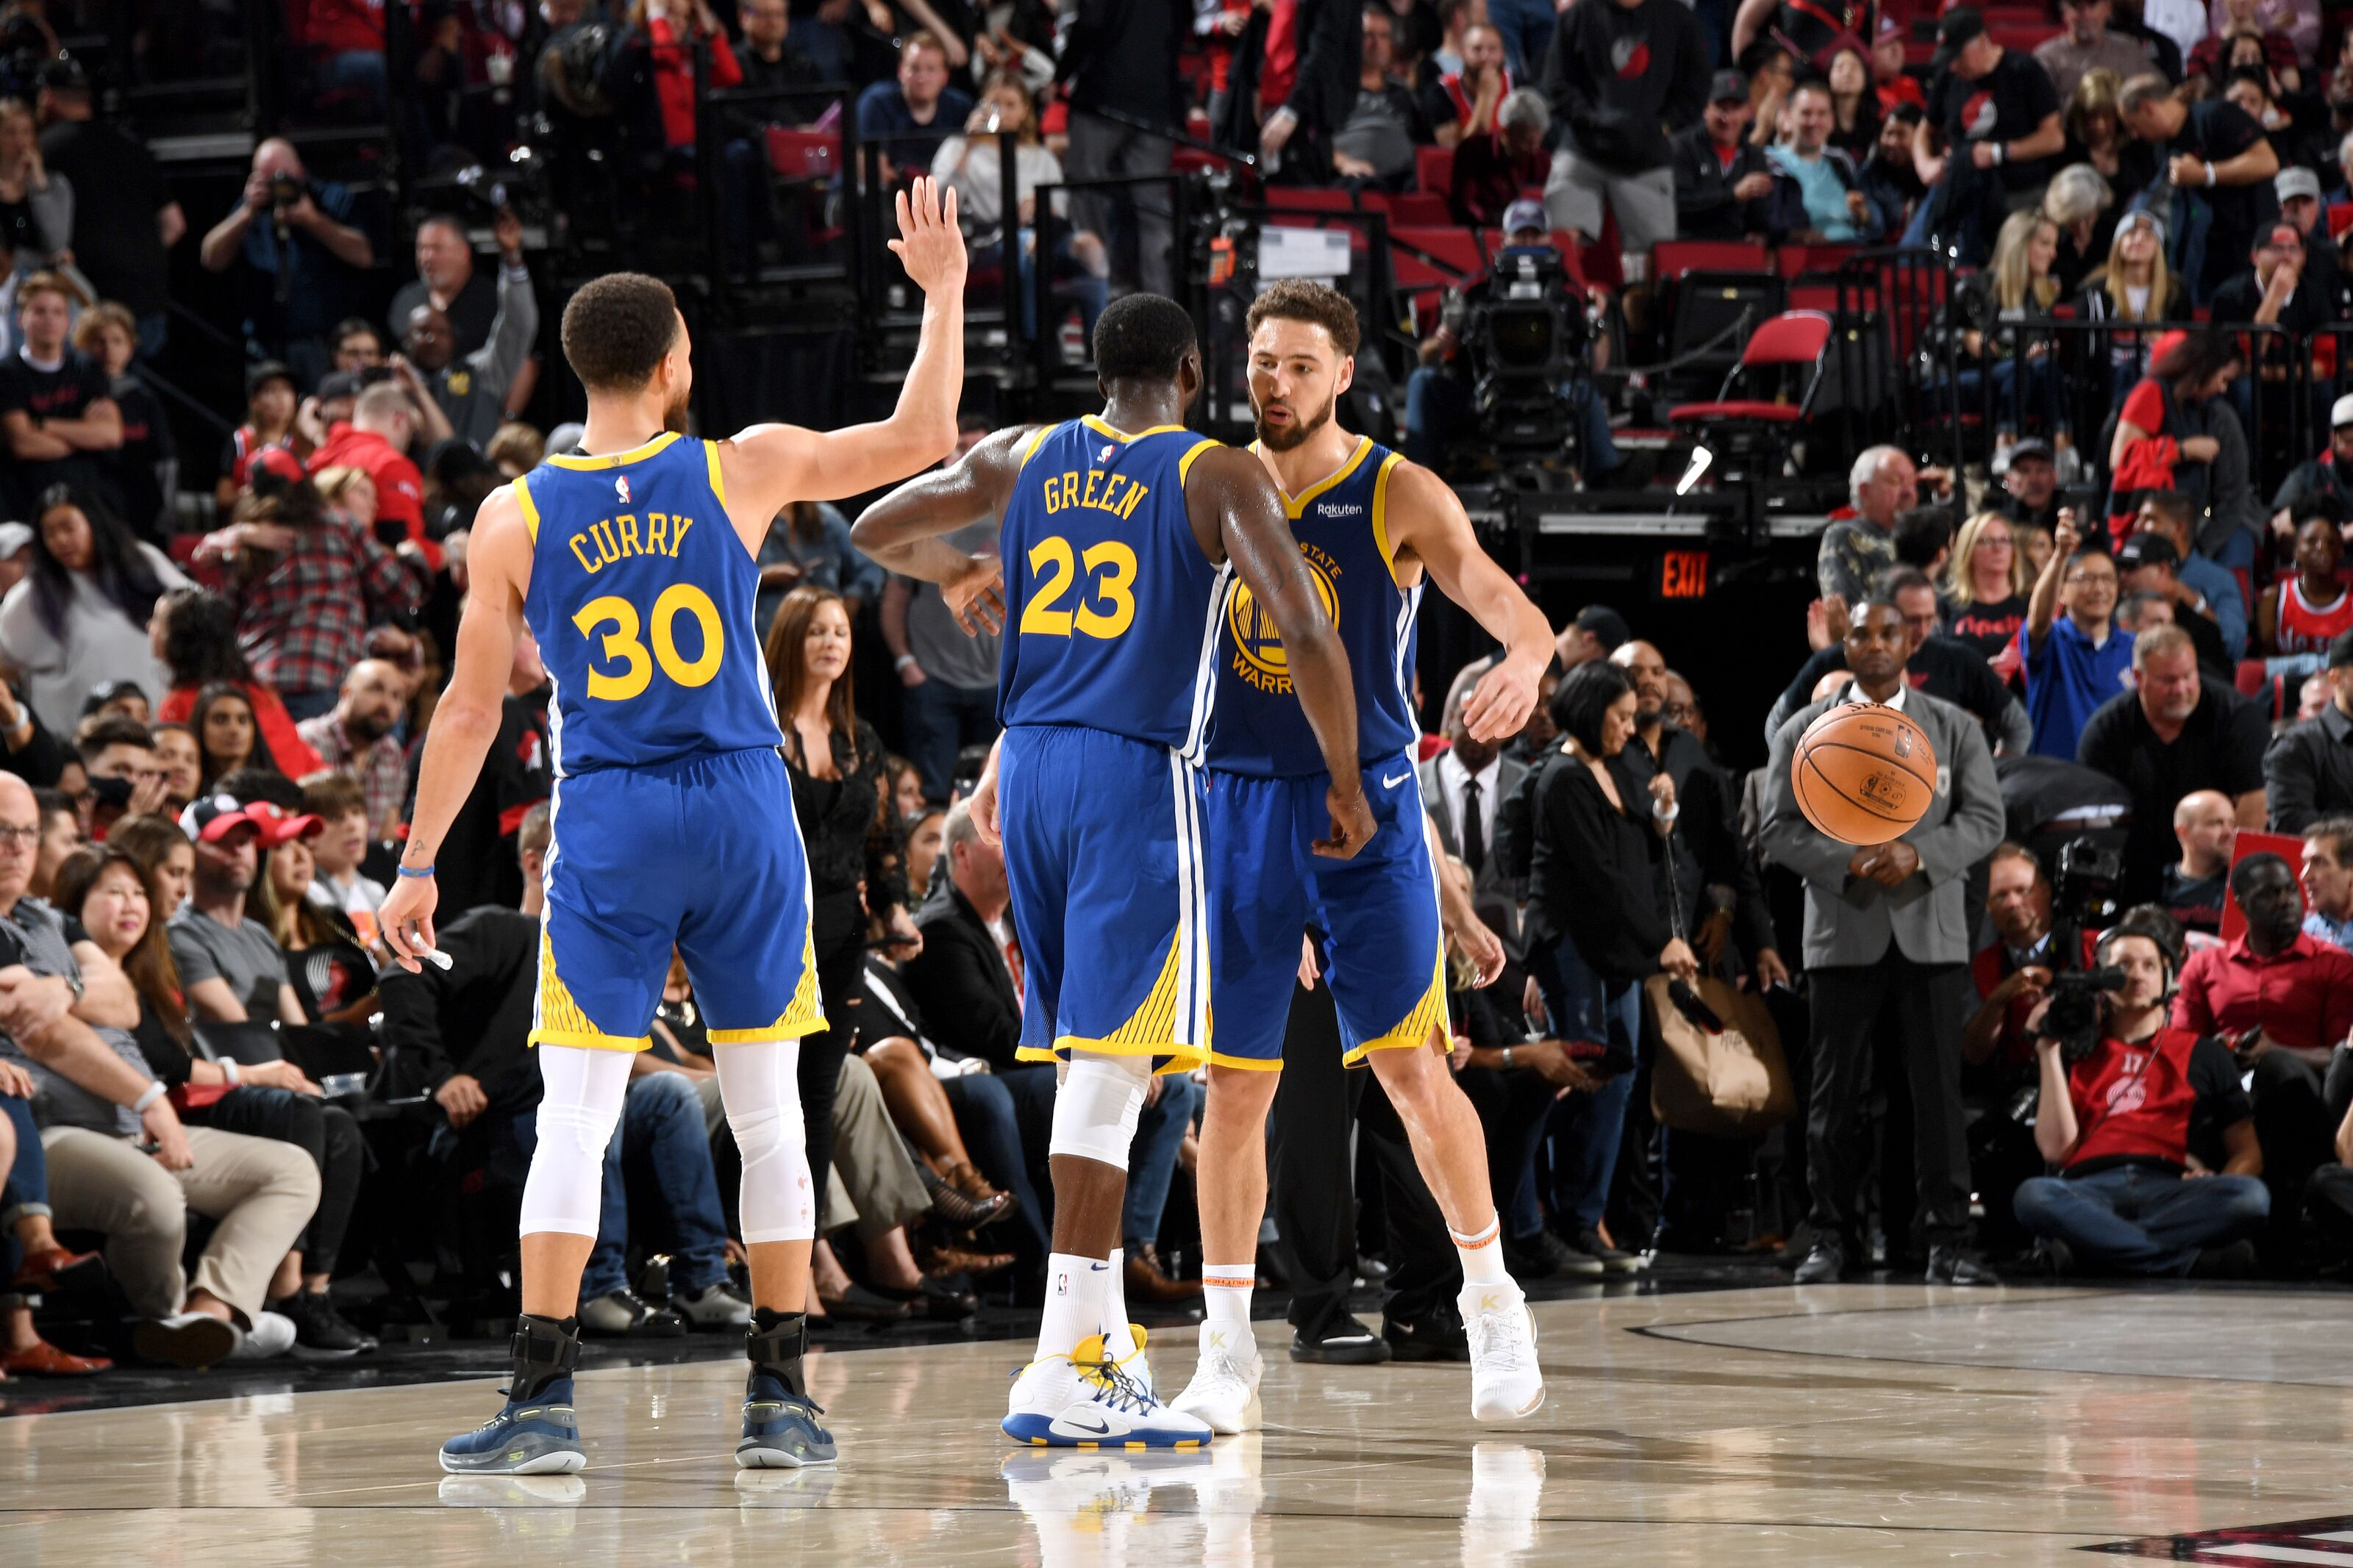 What will be a great start for the Dubs in 2019-20?